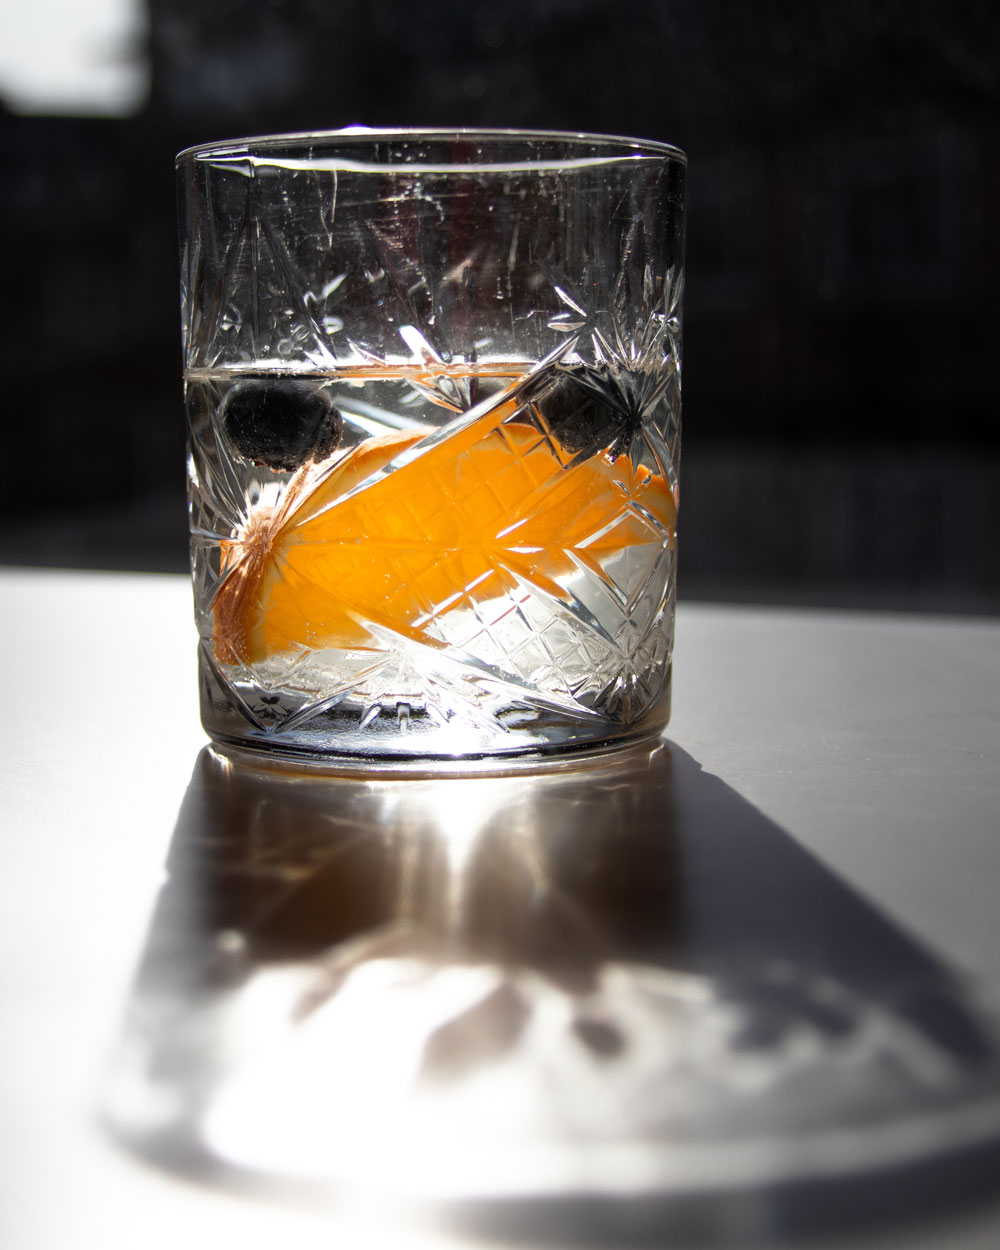 How to improve photography with an Instagram challenge. Photography drink with back light.